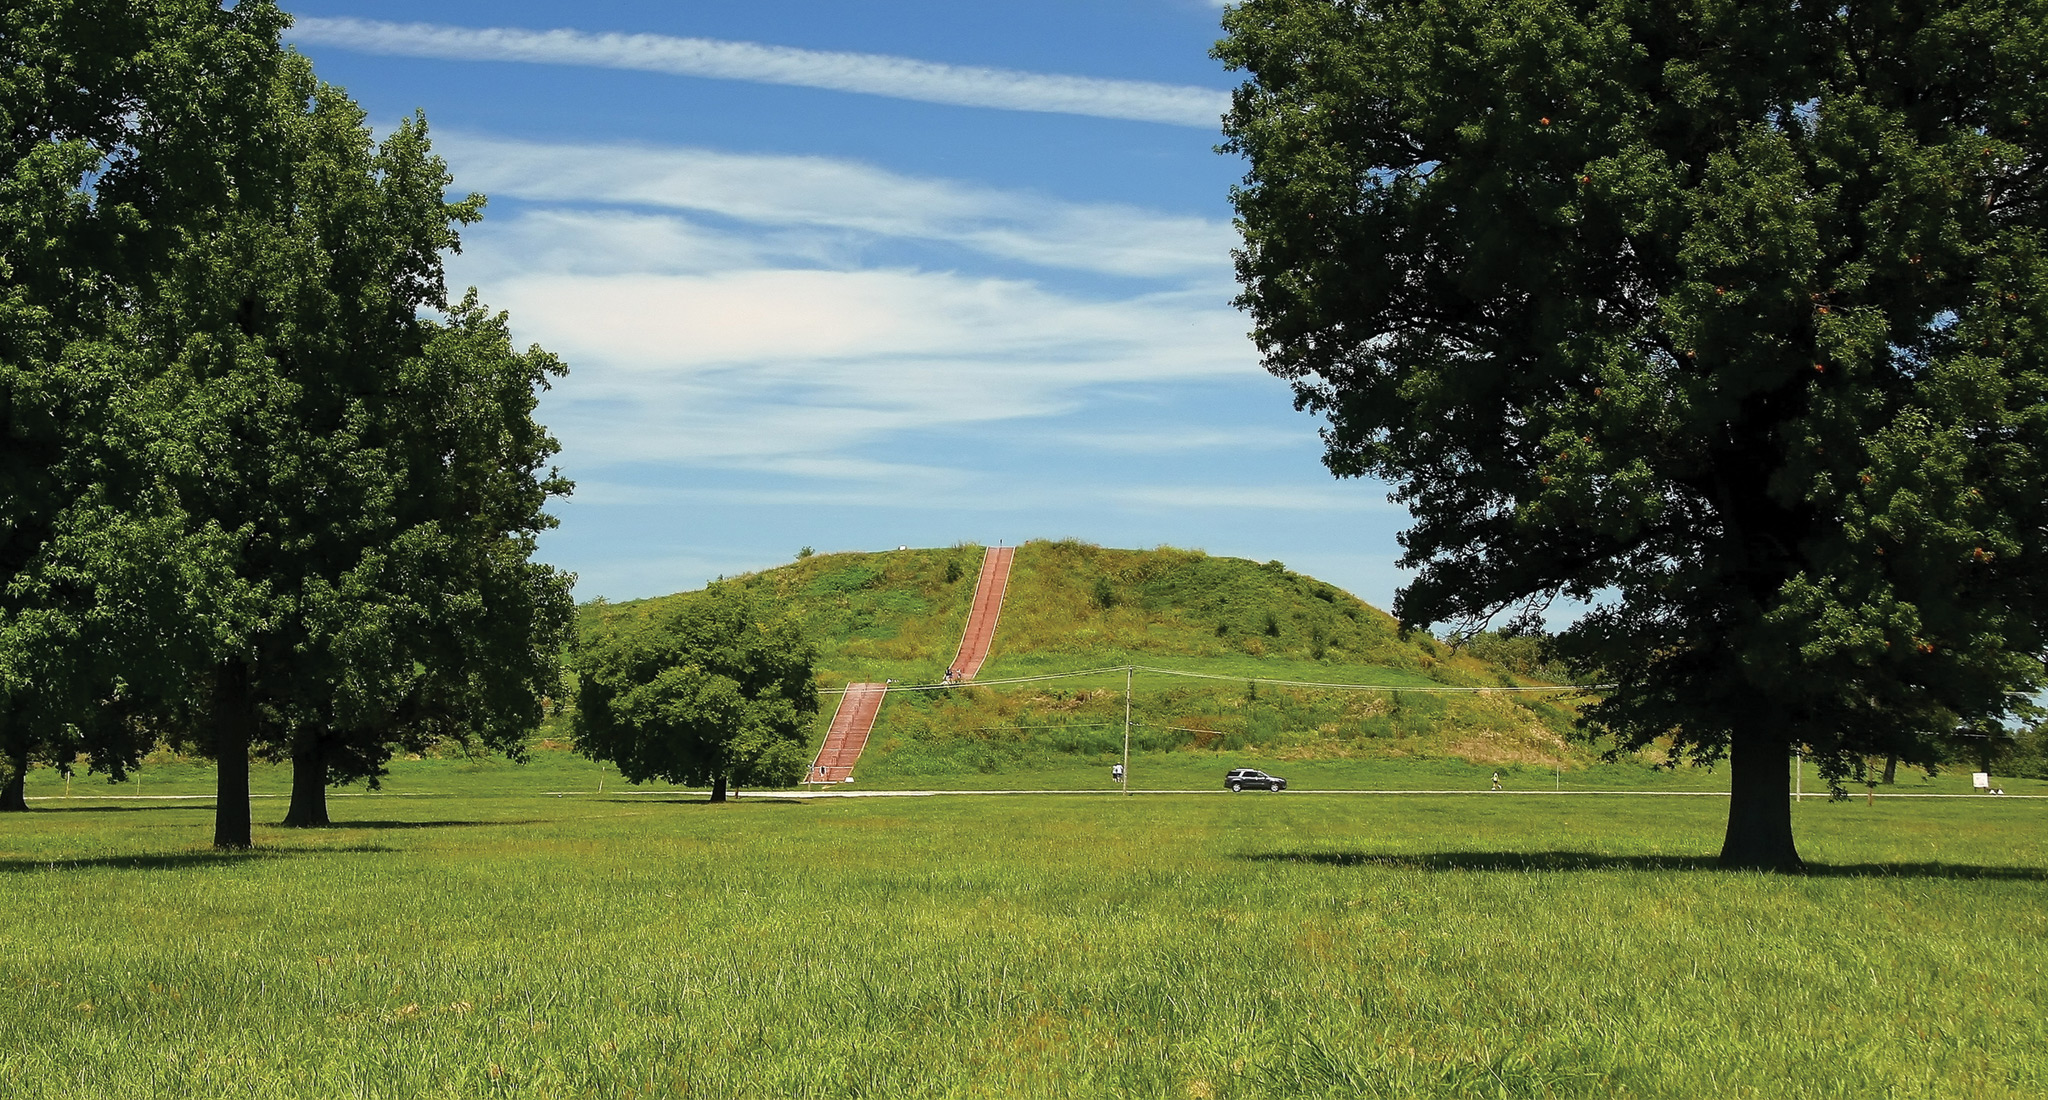 the cahokia mounds Cahokia was the largest and most influential city of the mound-building  mississippian culture analysis of teeth from 87 ancient cahokians.